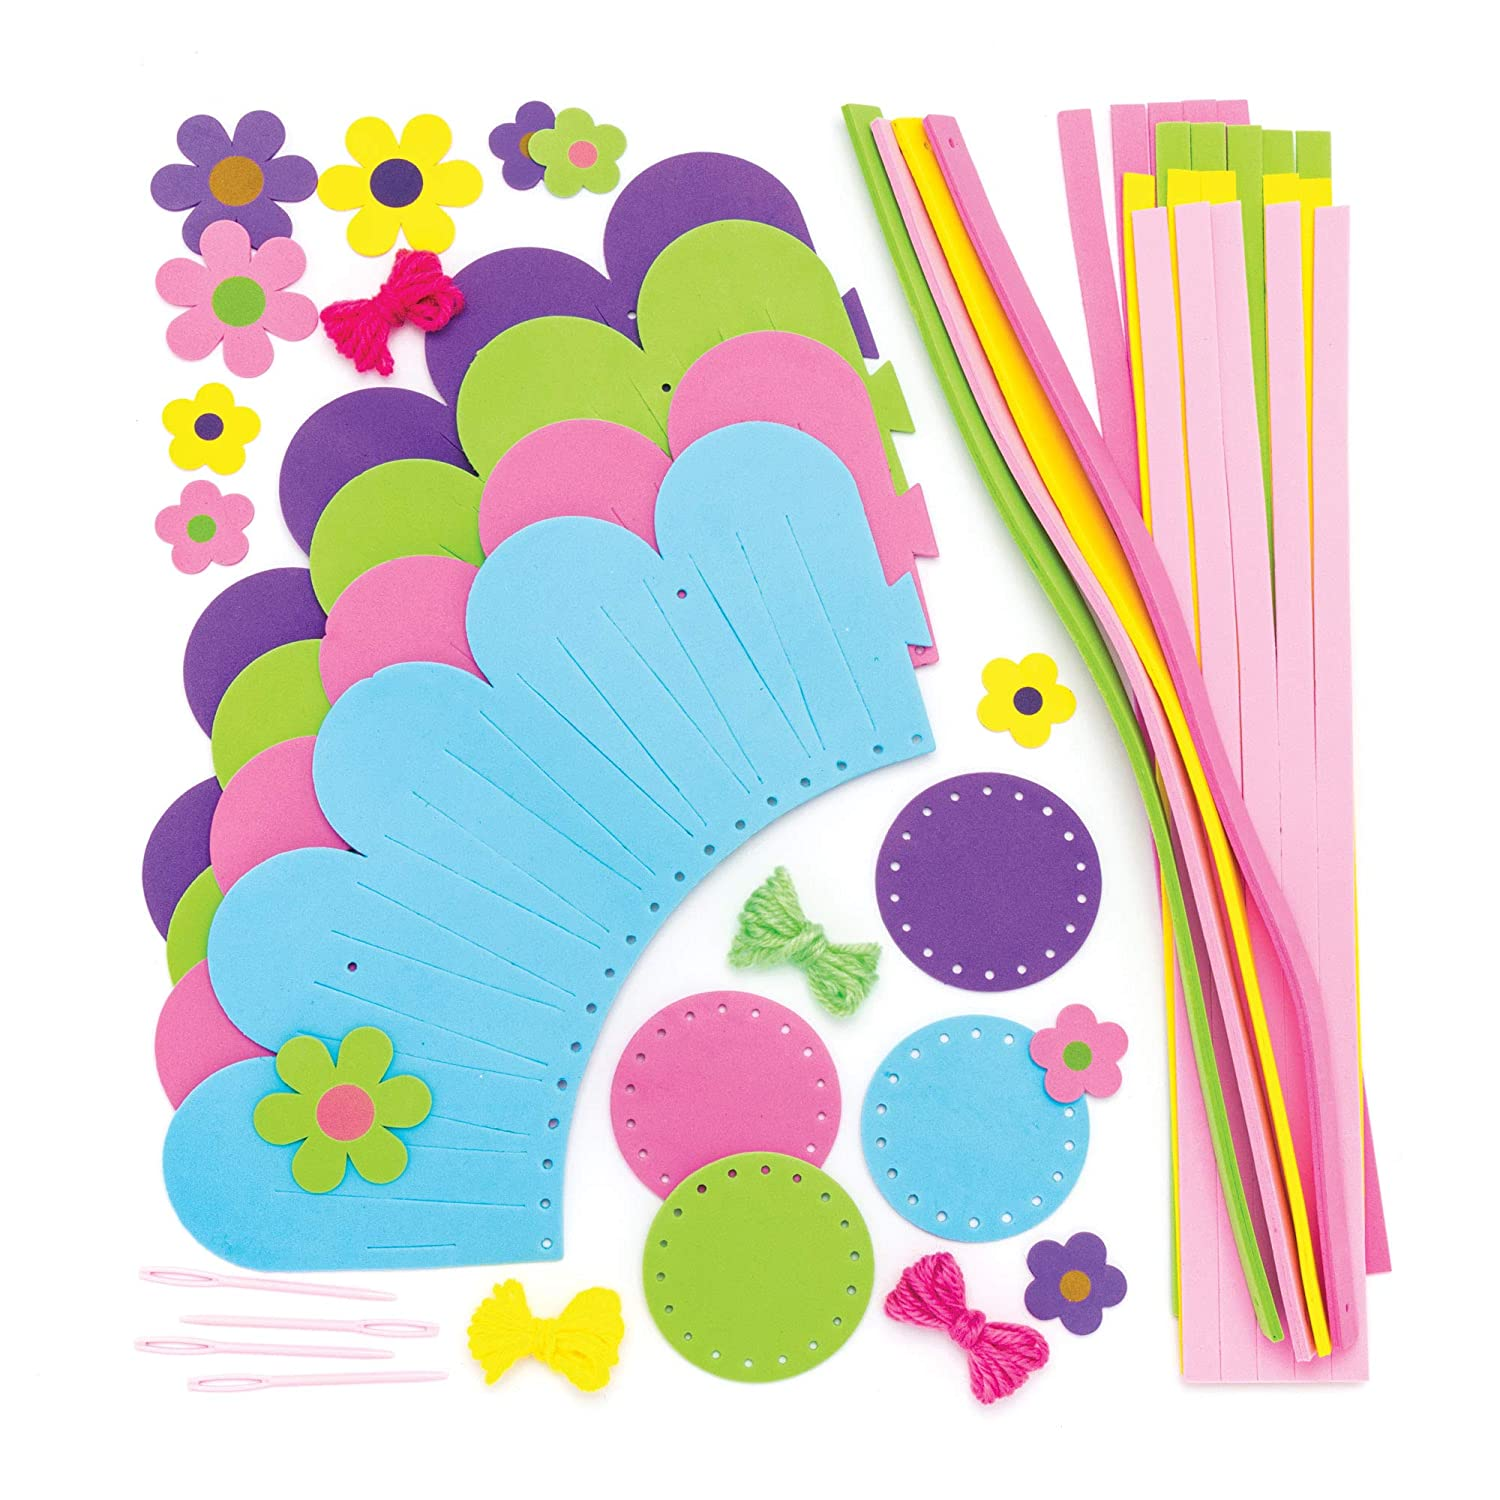 Baker Ross Flower Basket Weaving Kits Spring Themed Crafts for Kids to Assemble and Decorate Pack of 4